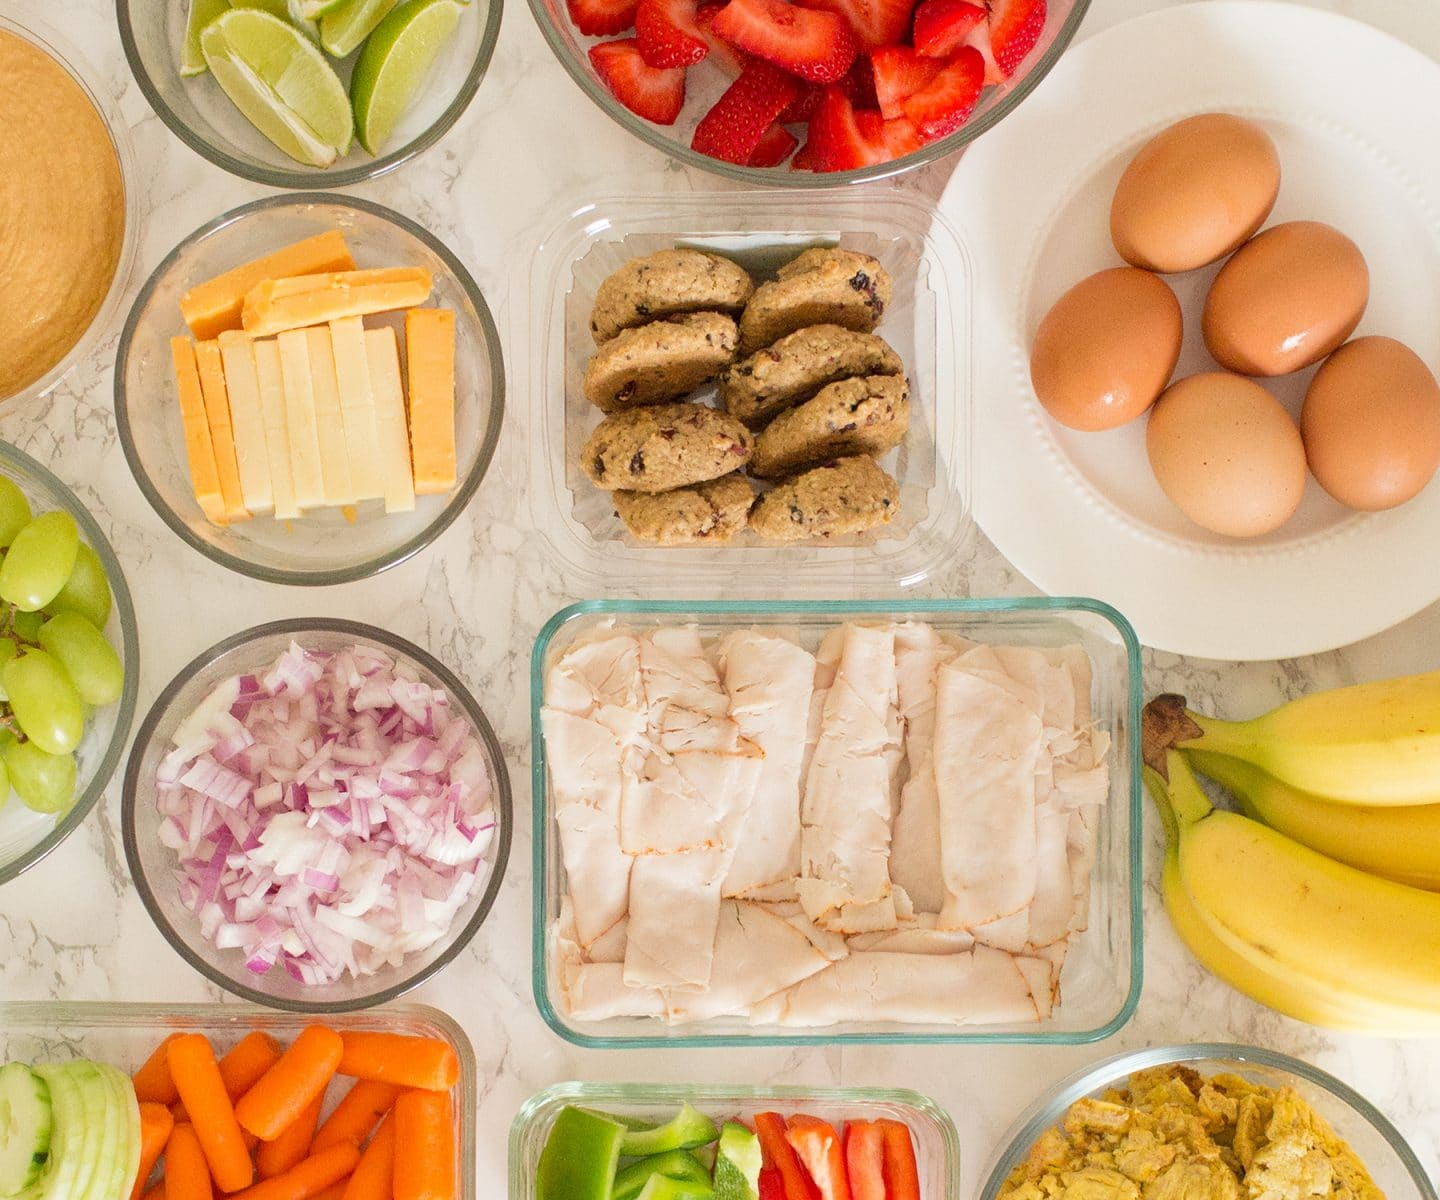 Meal prepping made easy | www.ashleybrookedesigns.com